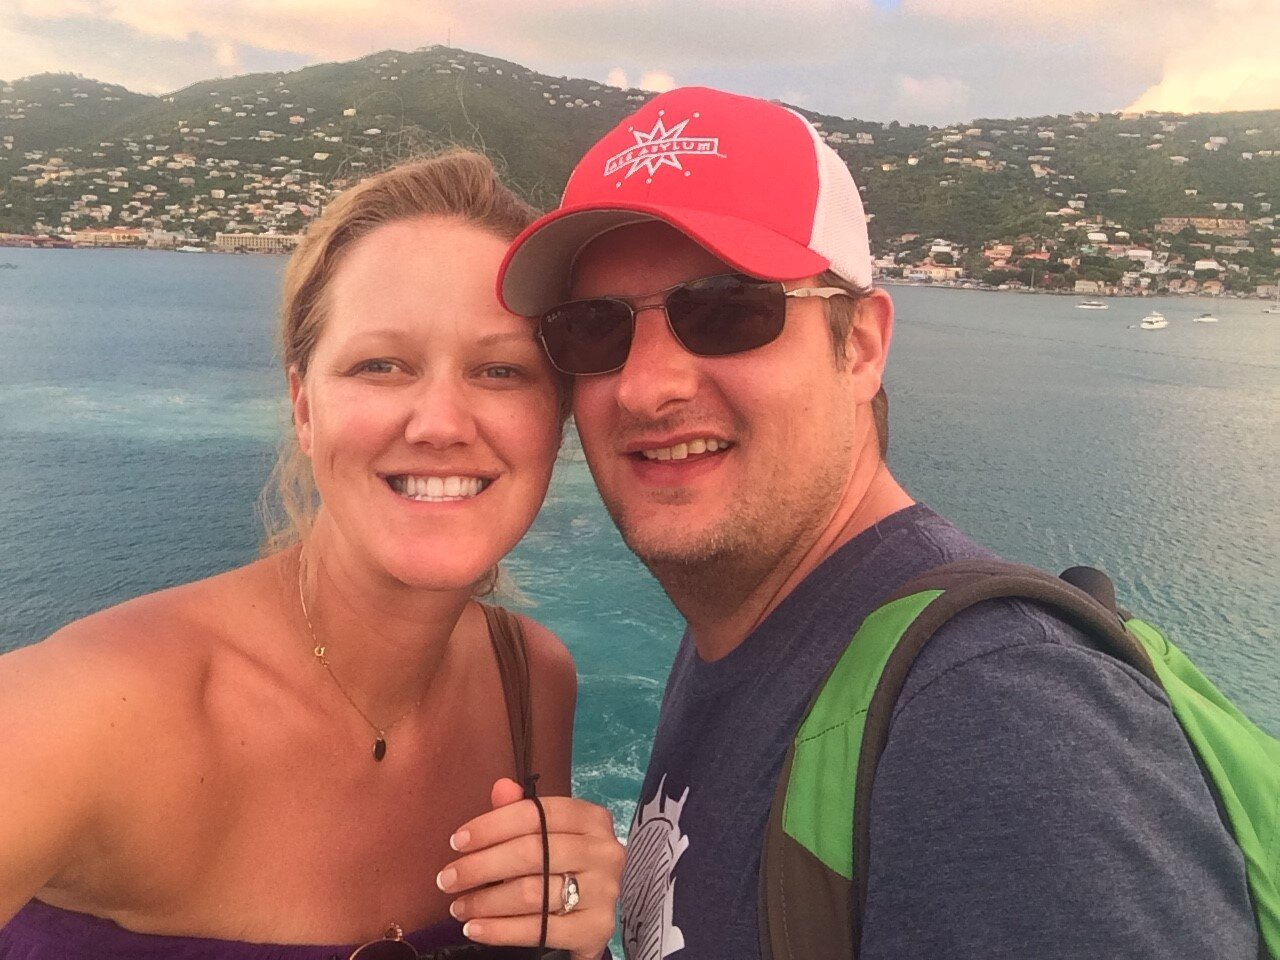 Getting some R&R in St. Thomas